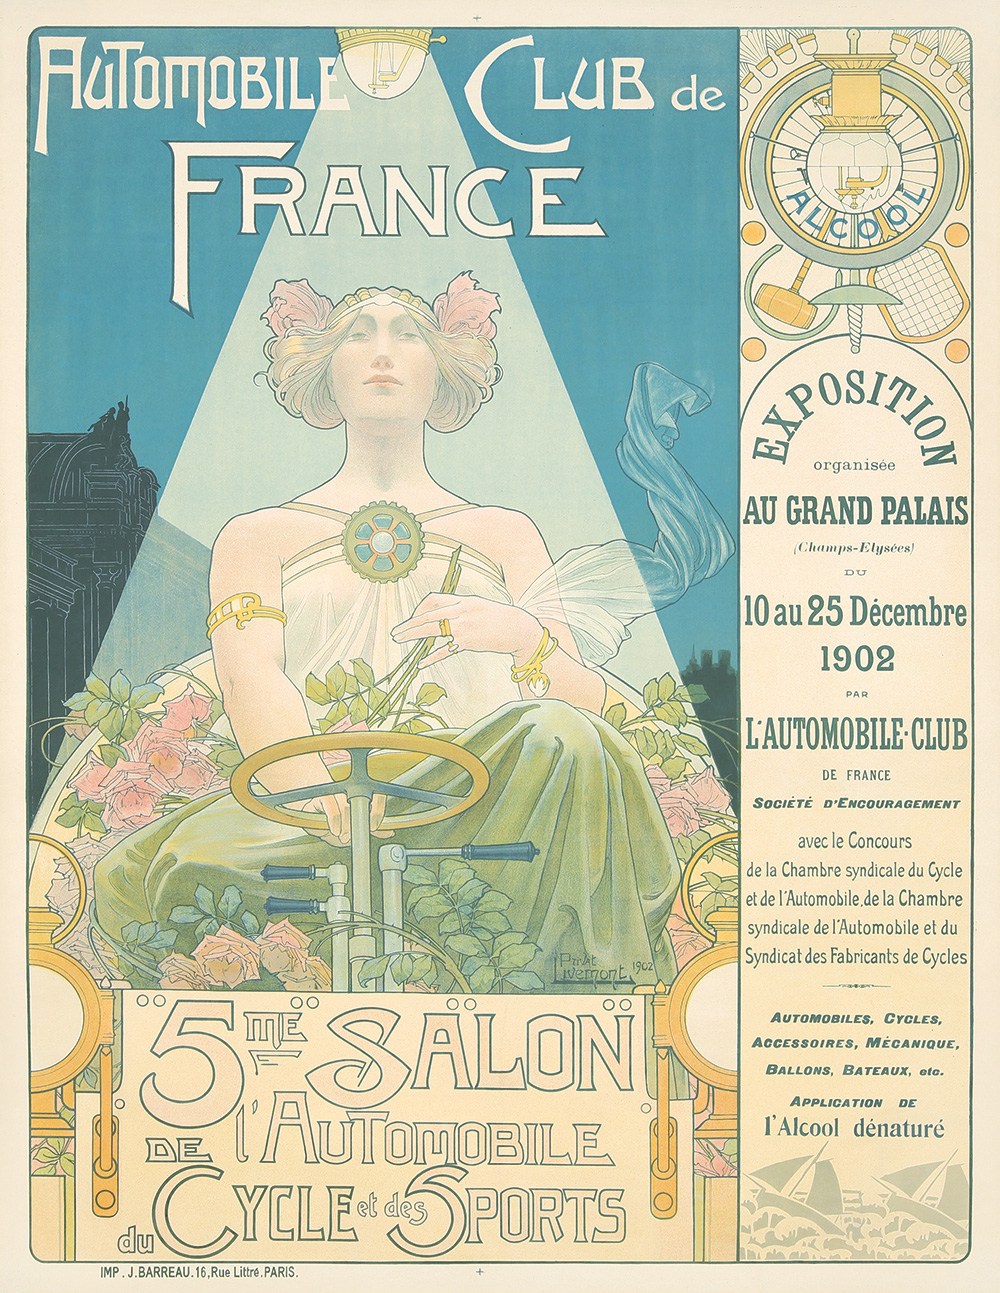 39. Automobile Club de France/5me Salon. 1902.